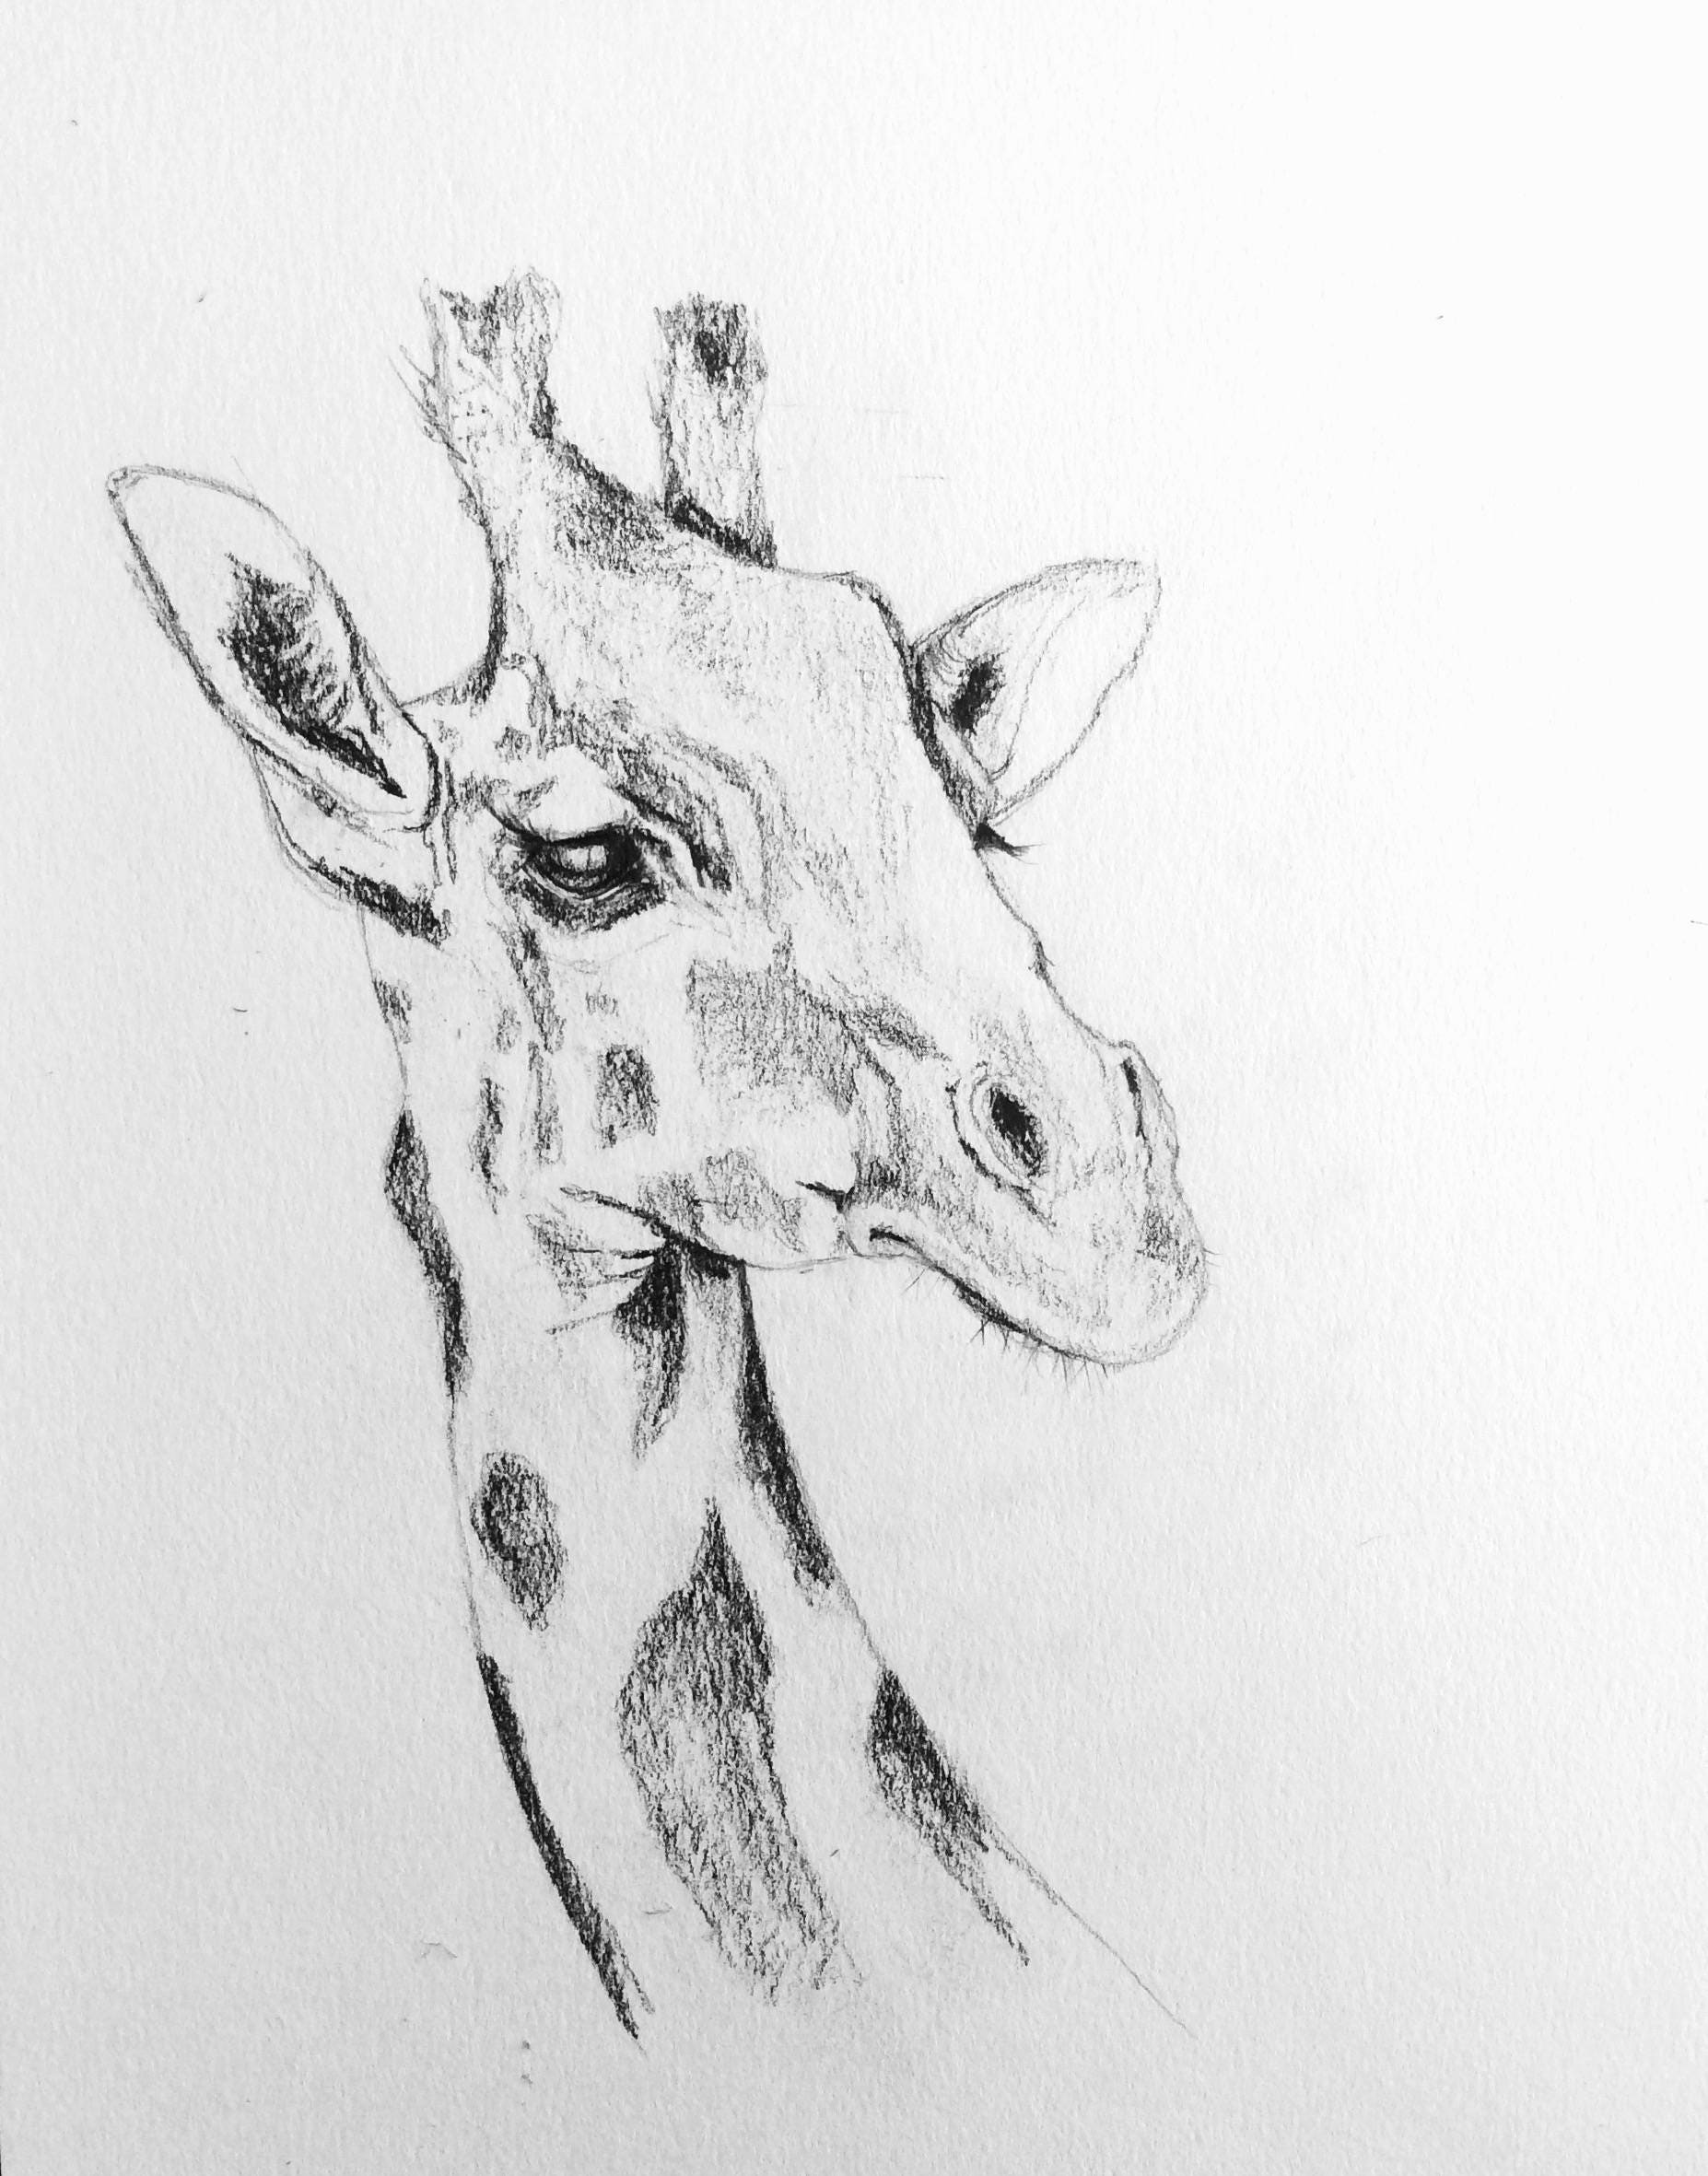 Pencil and charcoal sketch of giraffe